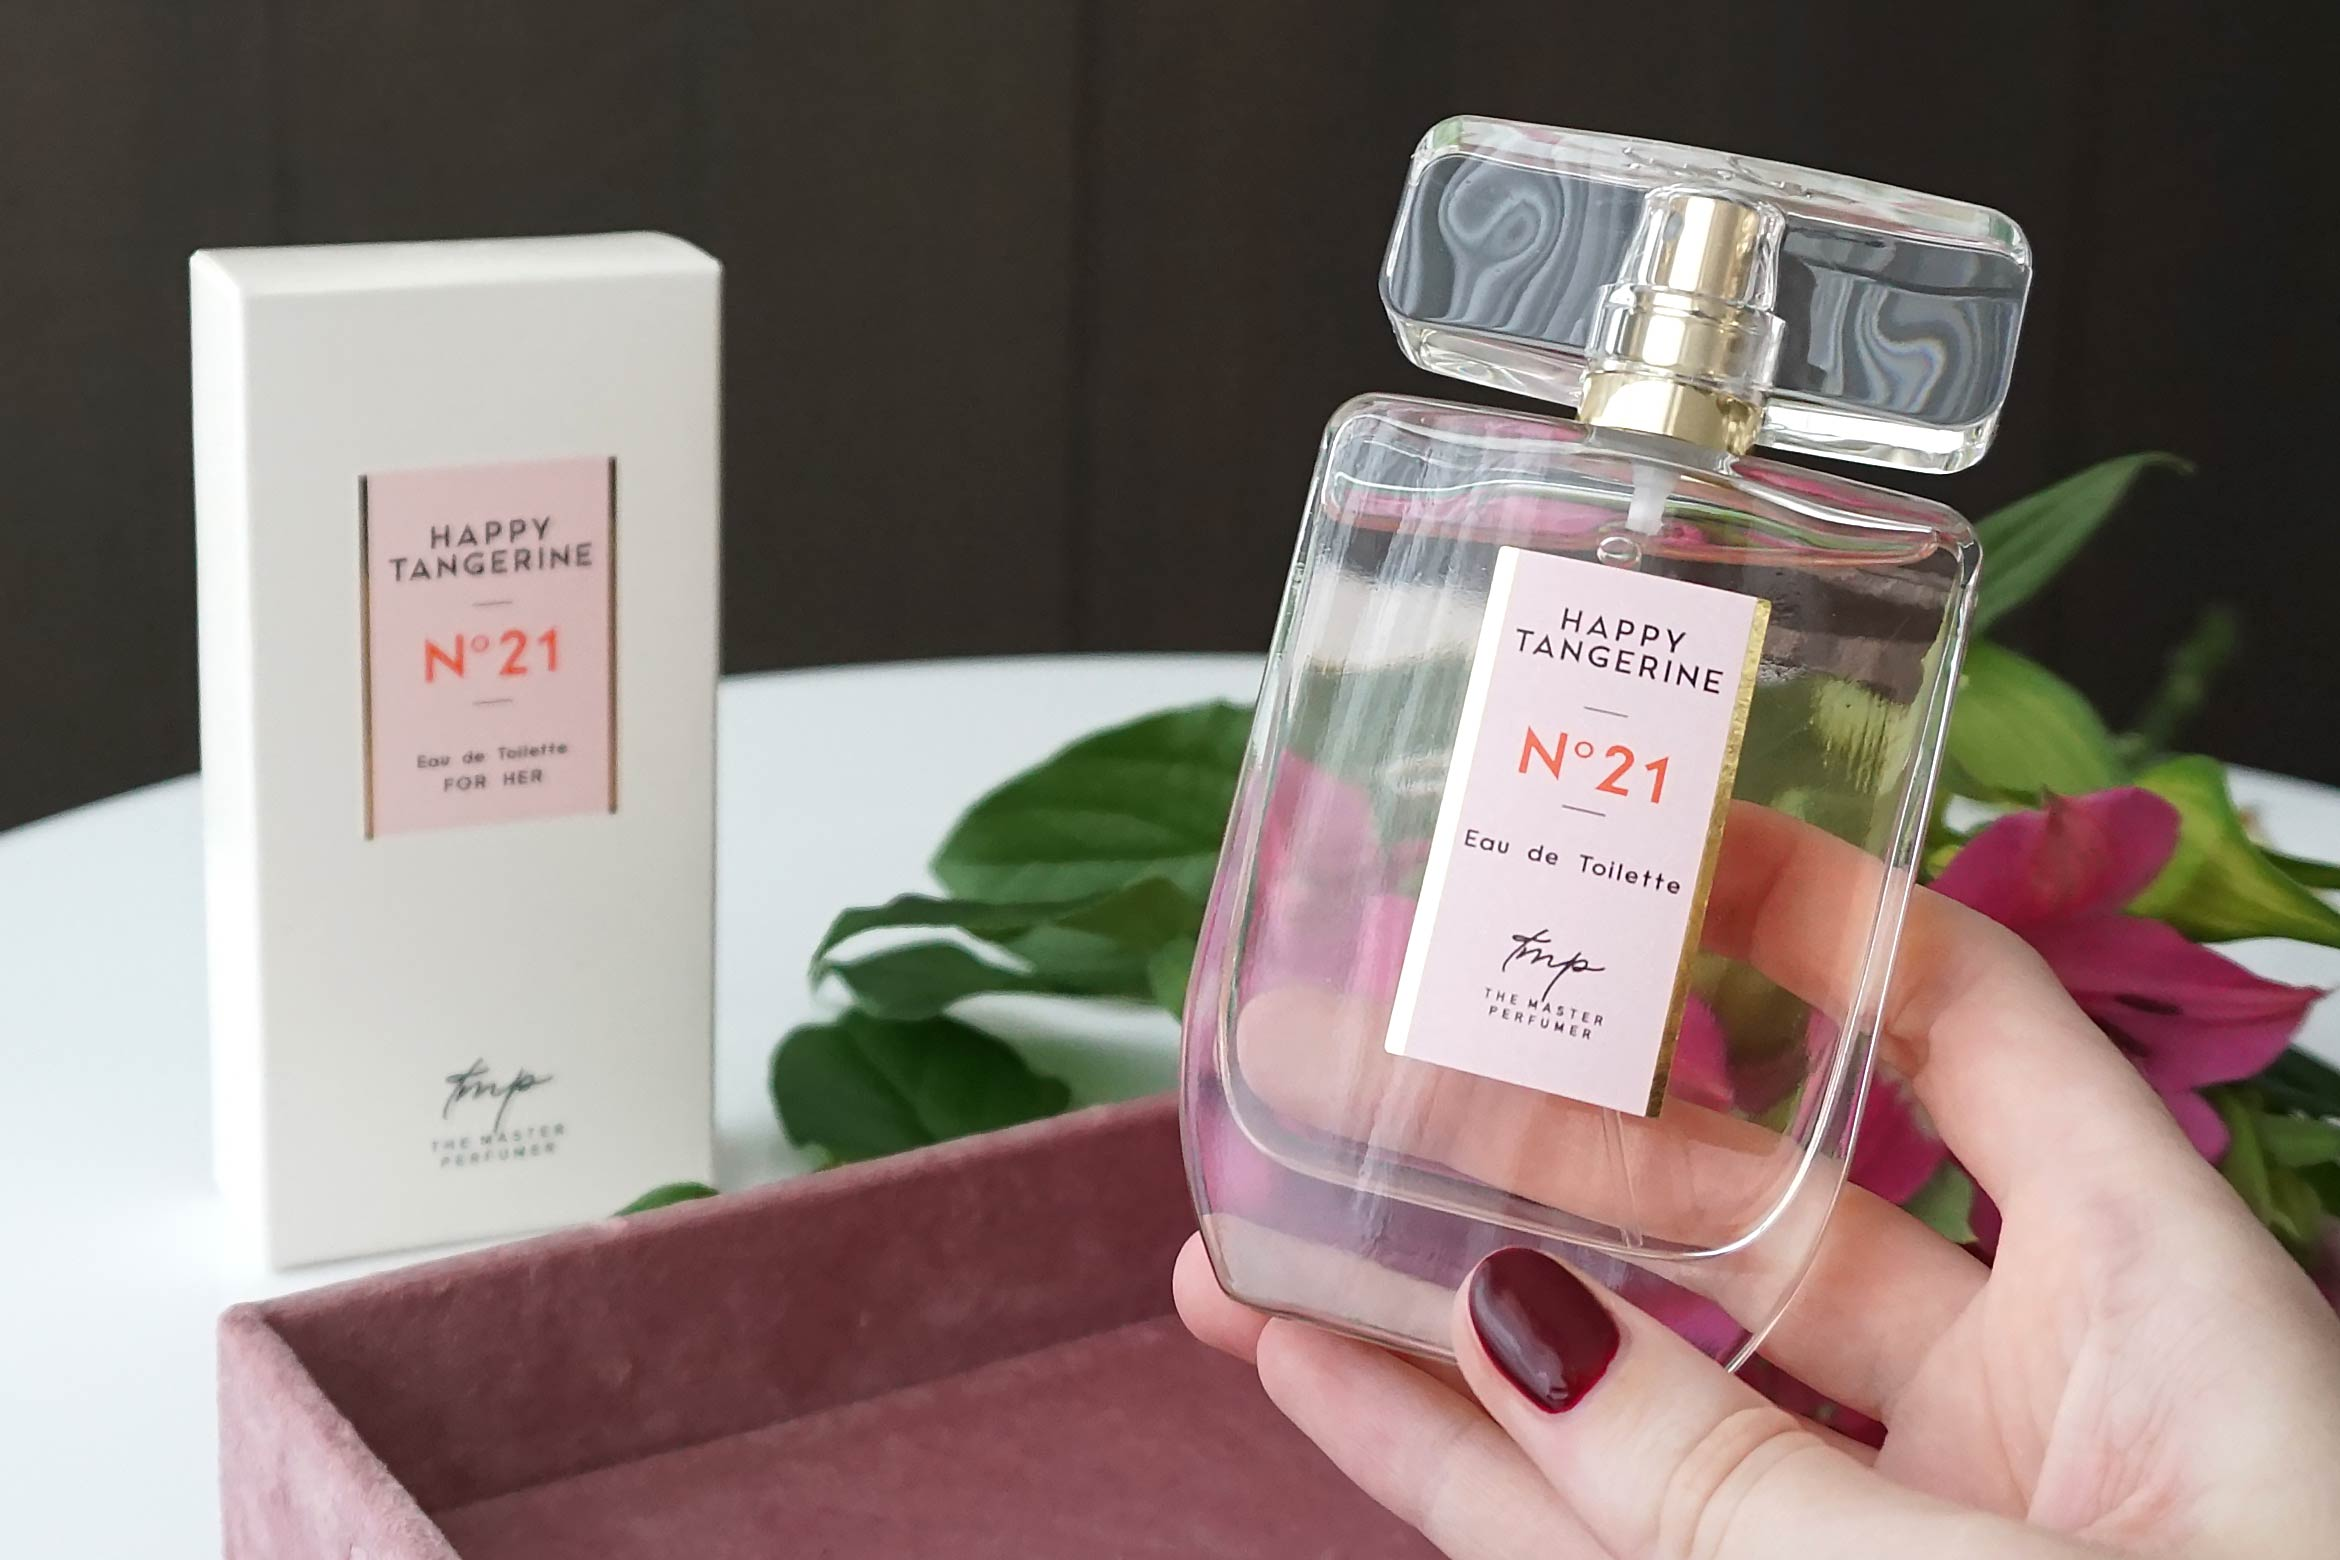 The-Master-Perfumer-N-21-Happy-Tangerine-review-4